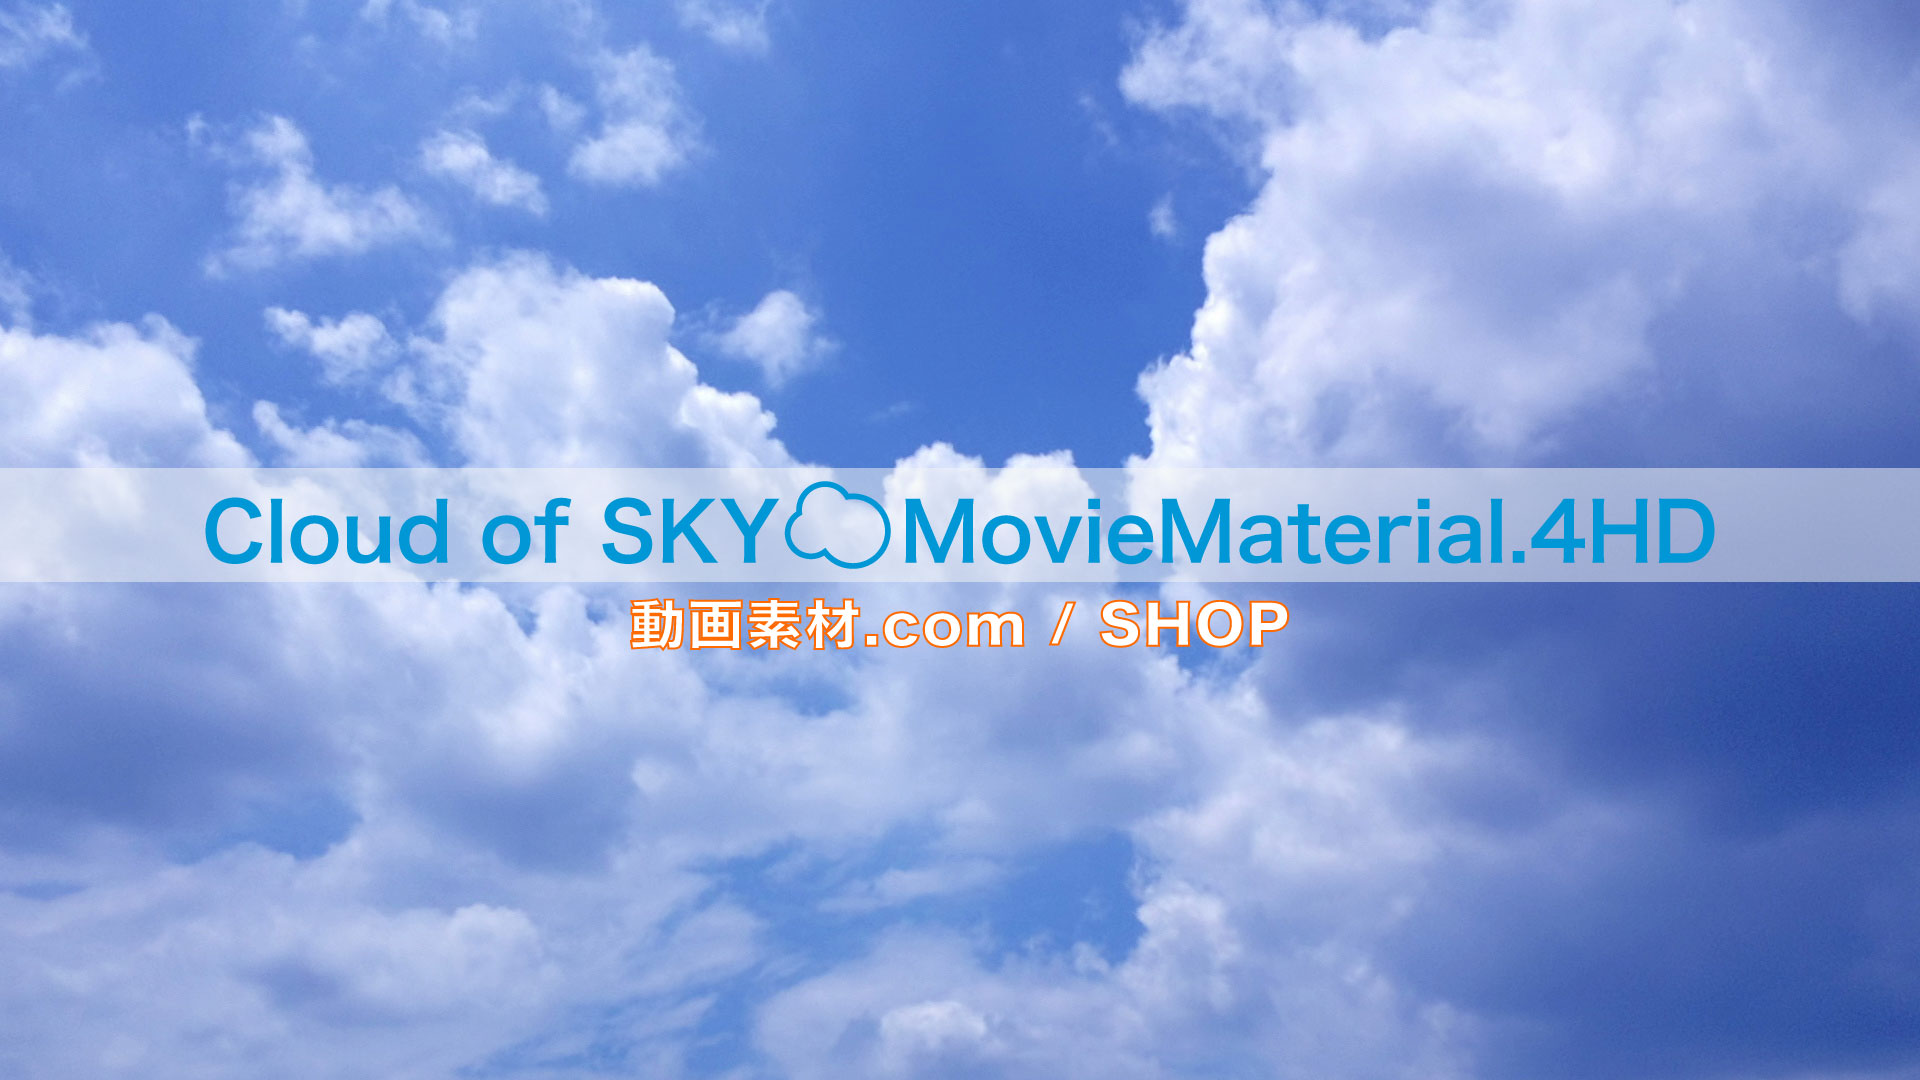 【Cloud of SKY MovieMaterial.4HD】ロイヤリティフリー フルハイビジョン空と雲の動画素材集 Image.10